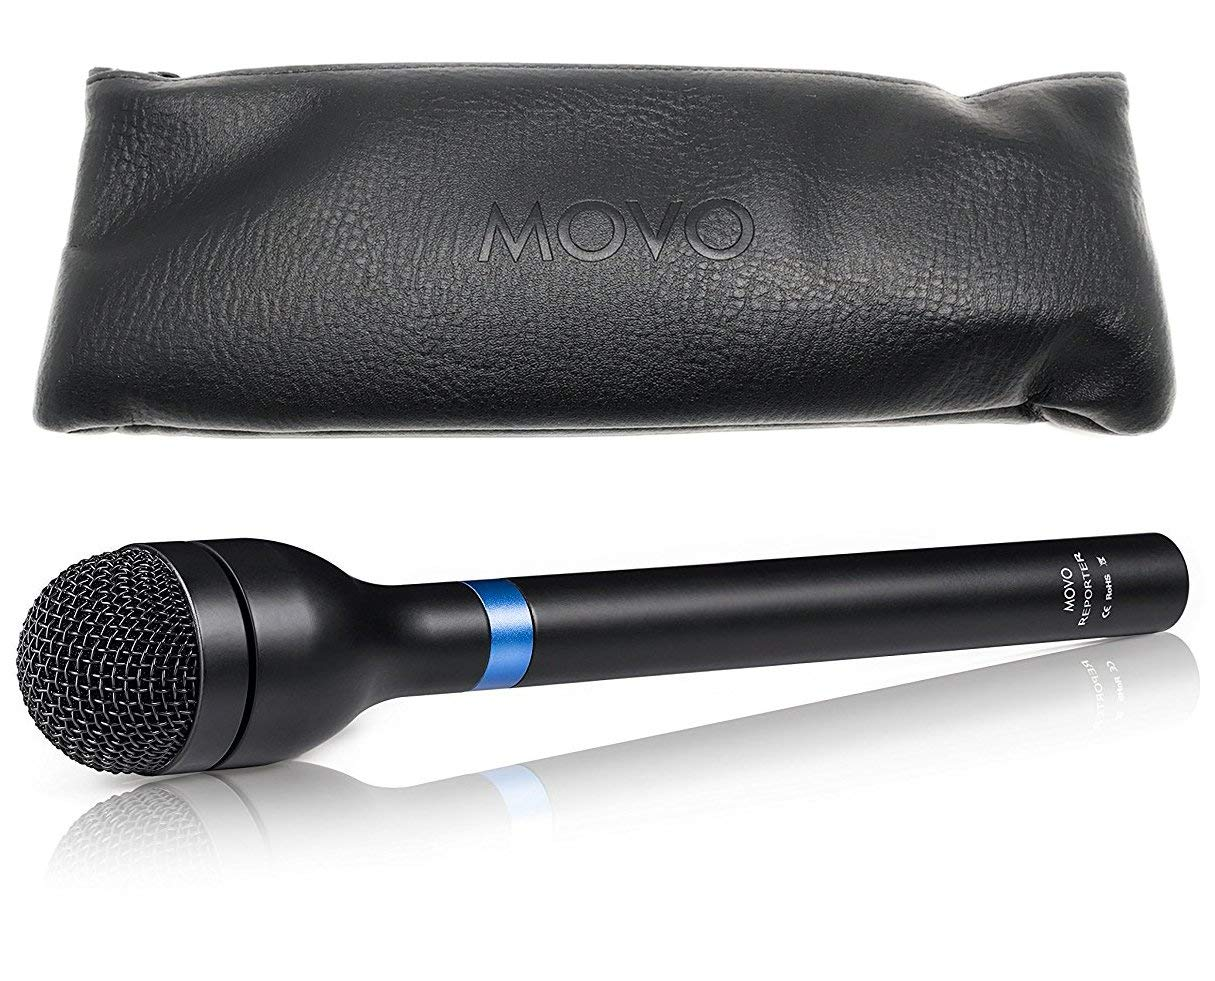 Movo HM-M2 Dynamic Omnidirectional Handheld Interview Microphone with 3-Pin XLR Connector by Movo